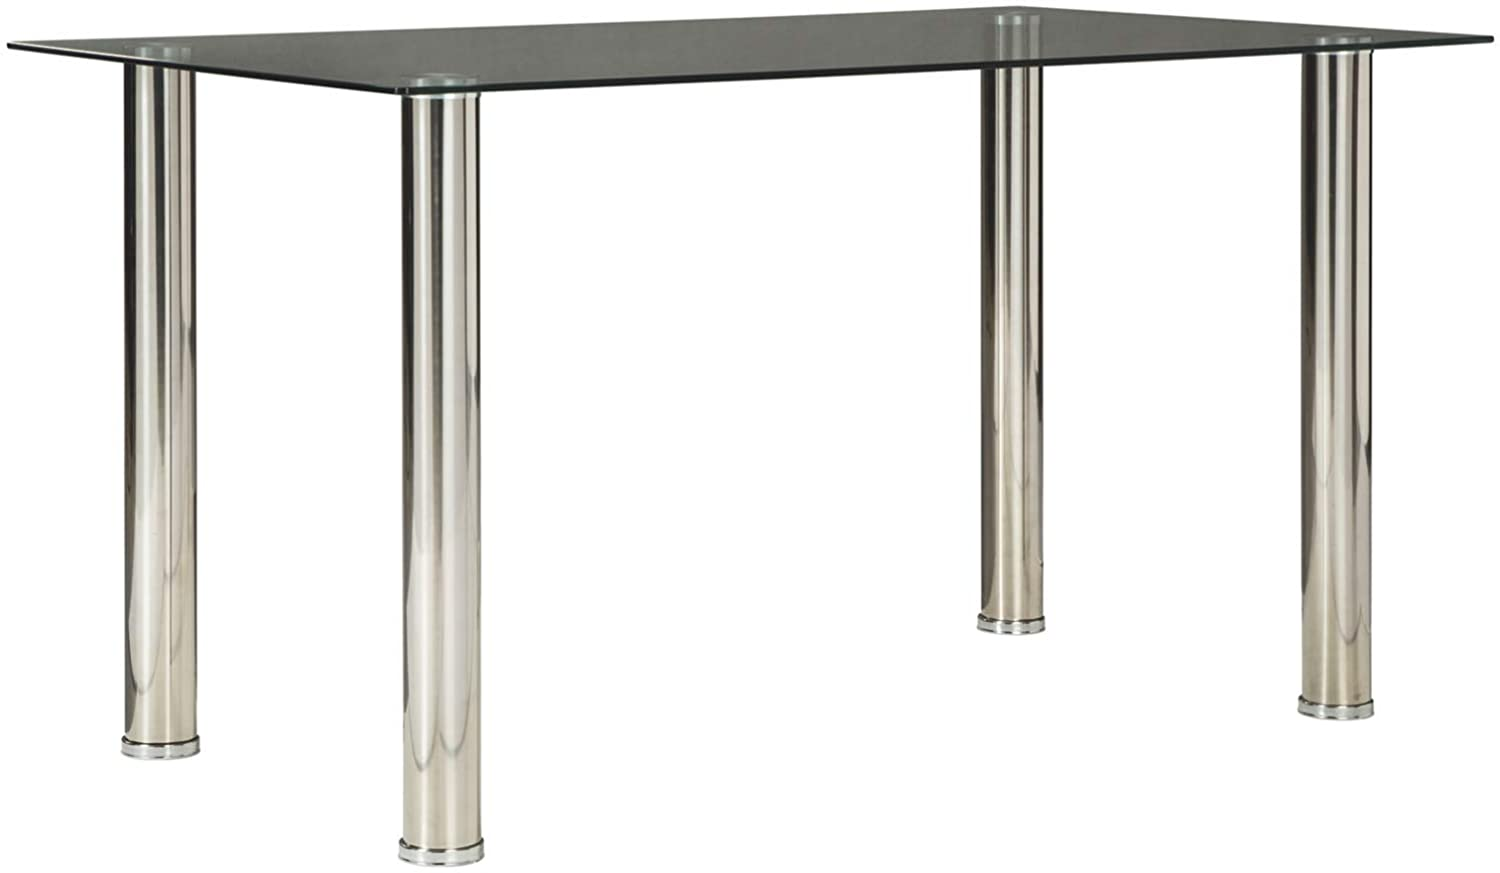 Signature Design by Ashley D170-125 Sariden Table, Rectangular, Black/White